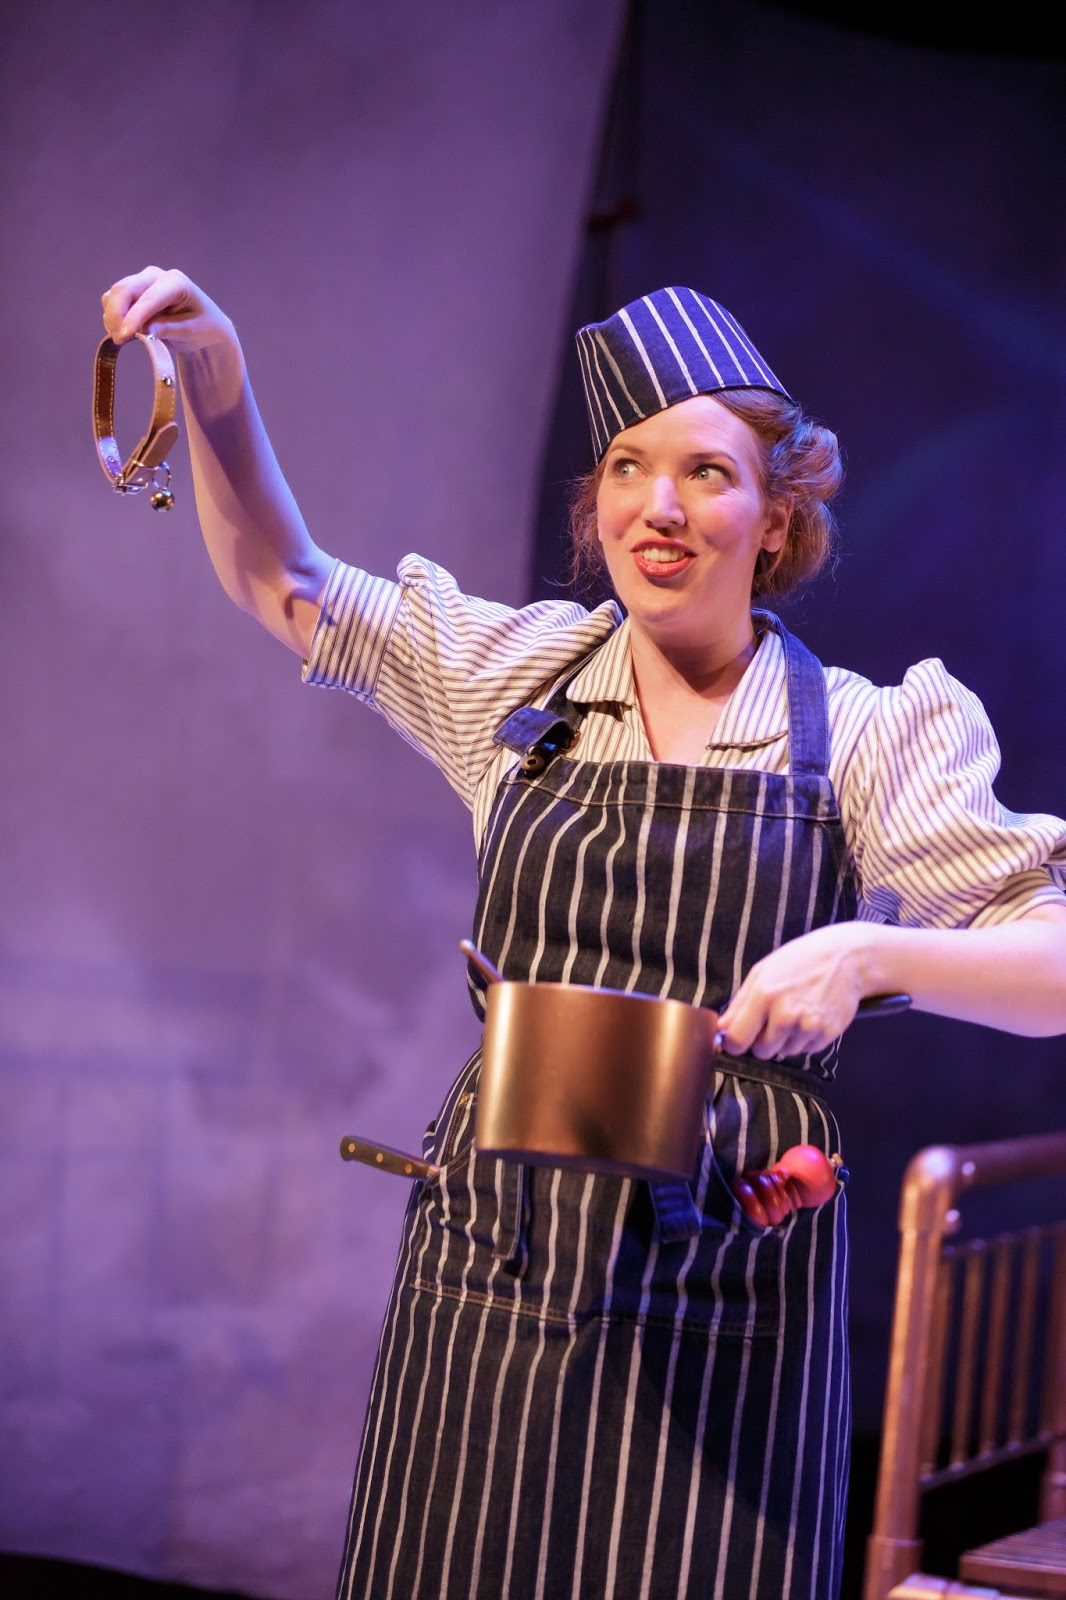 Polly Smith as The Butcher